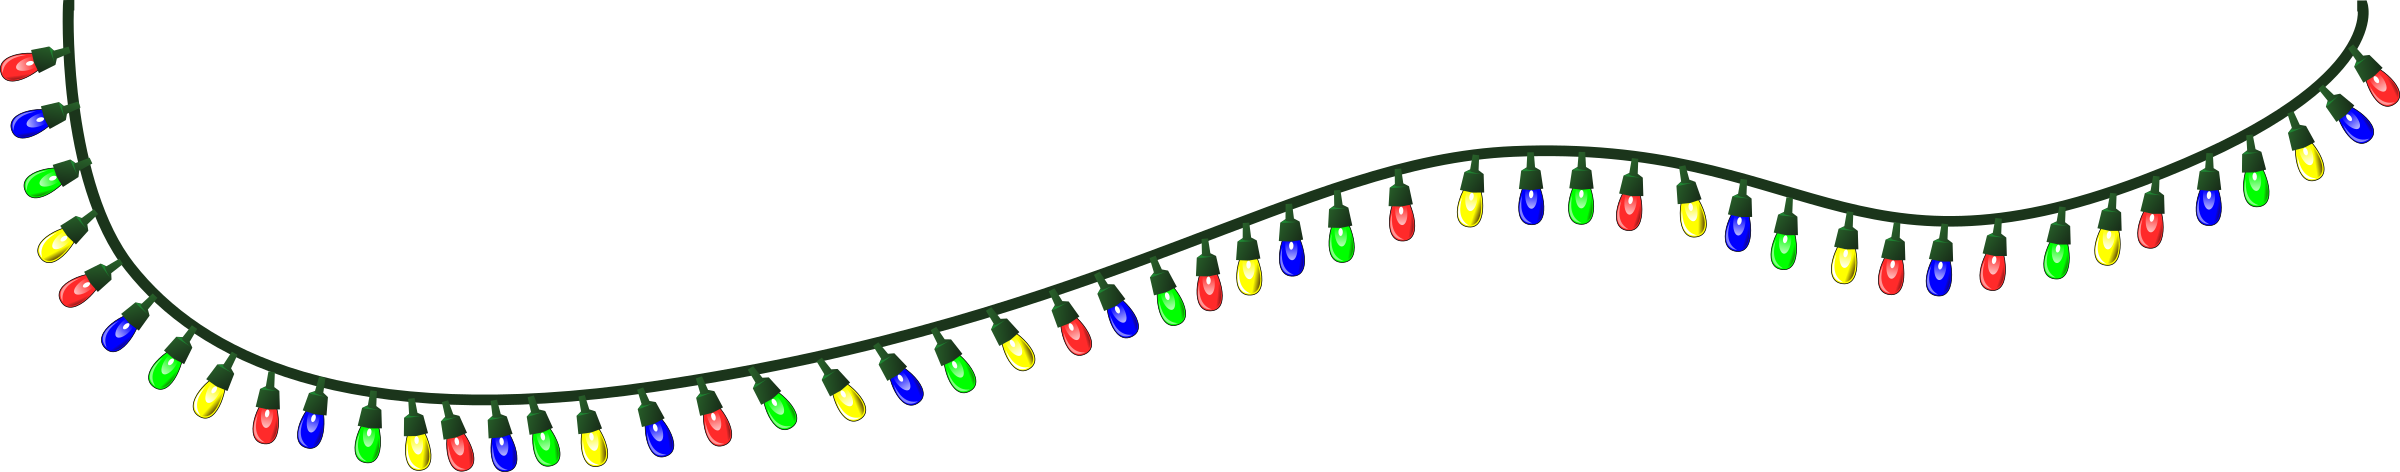 christmas string lights clipart - Clipground